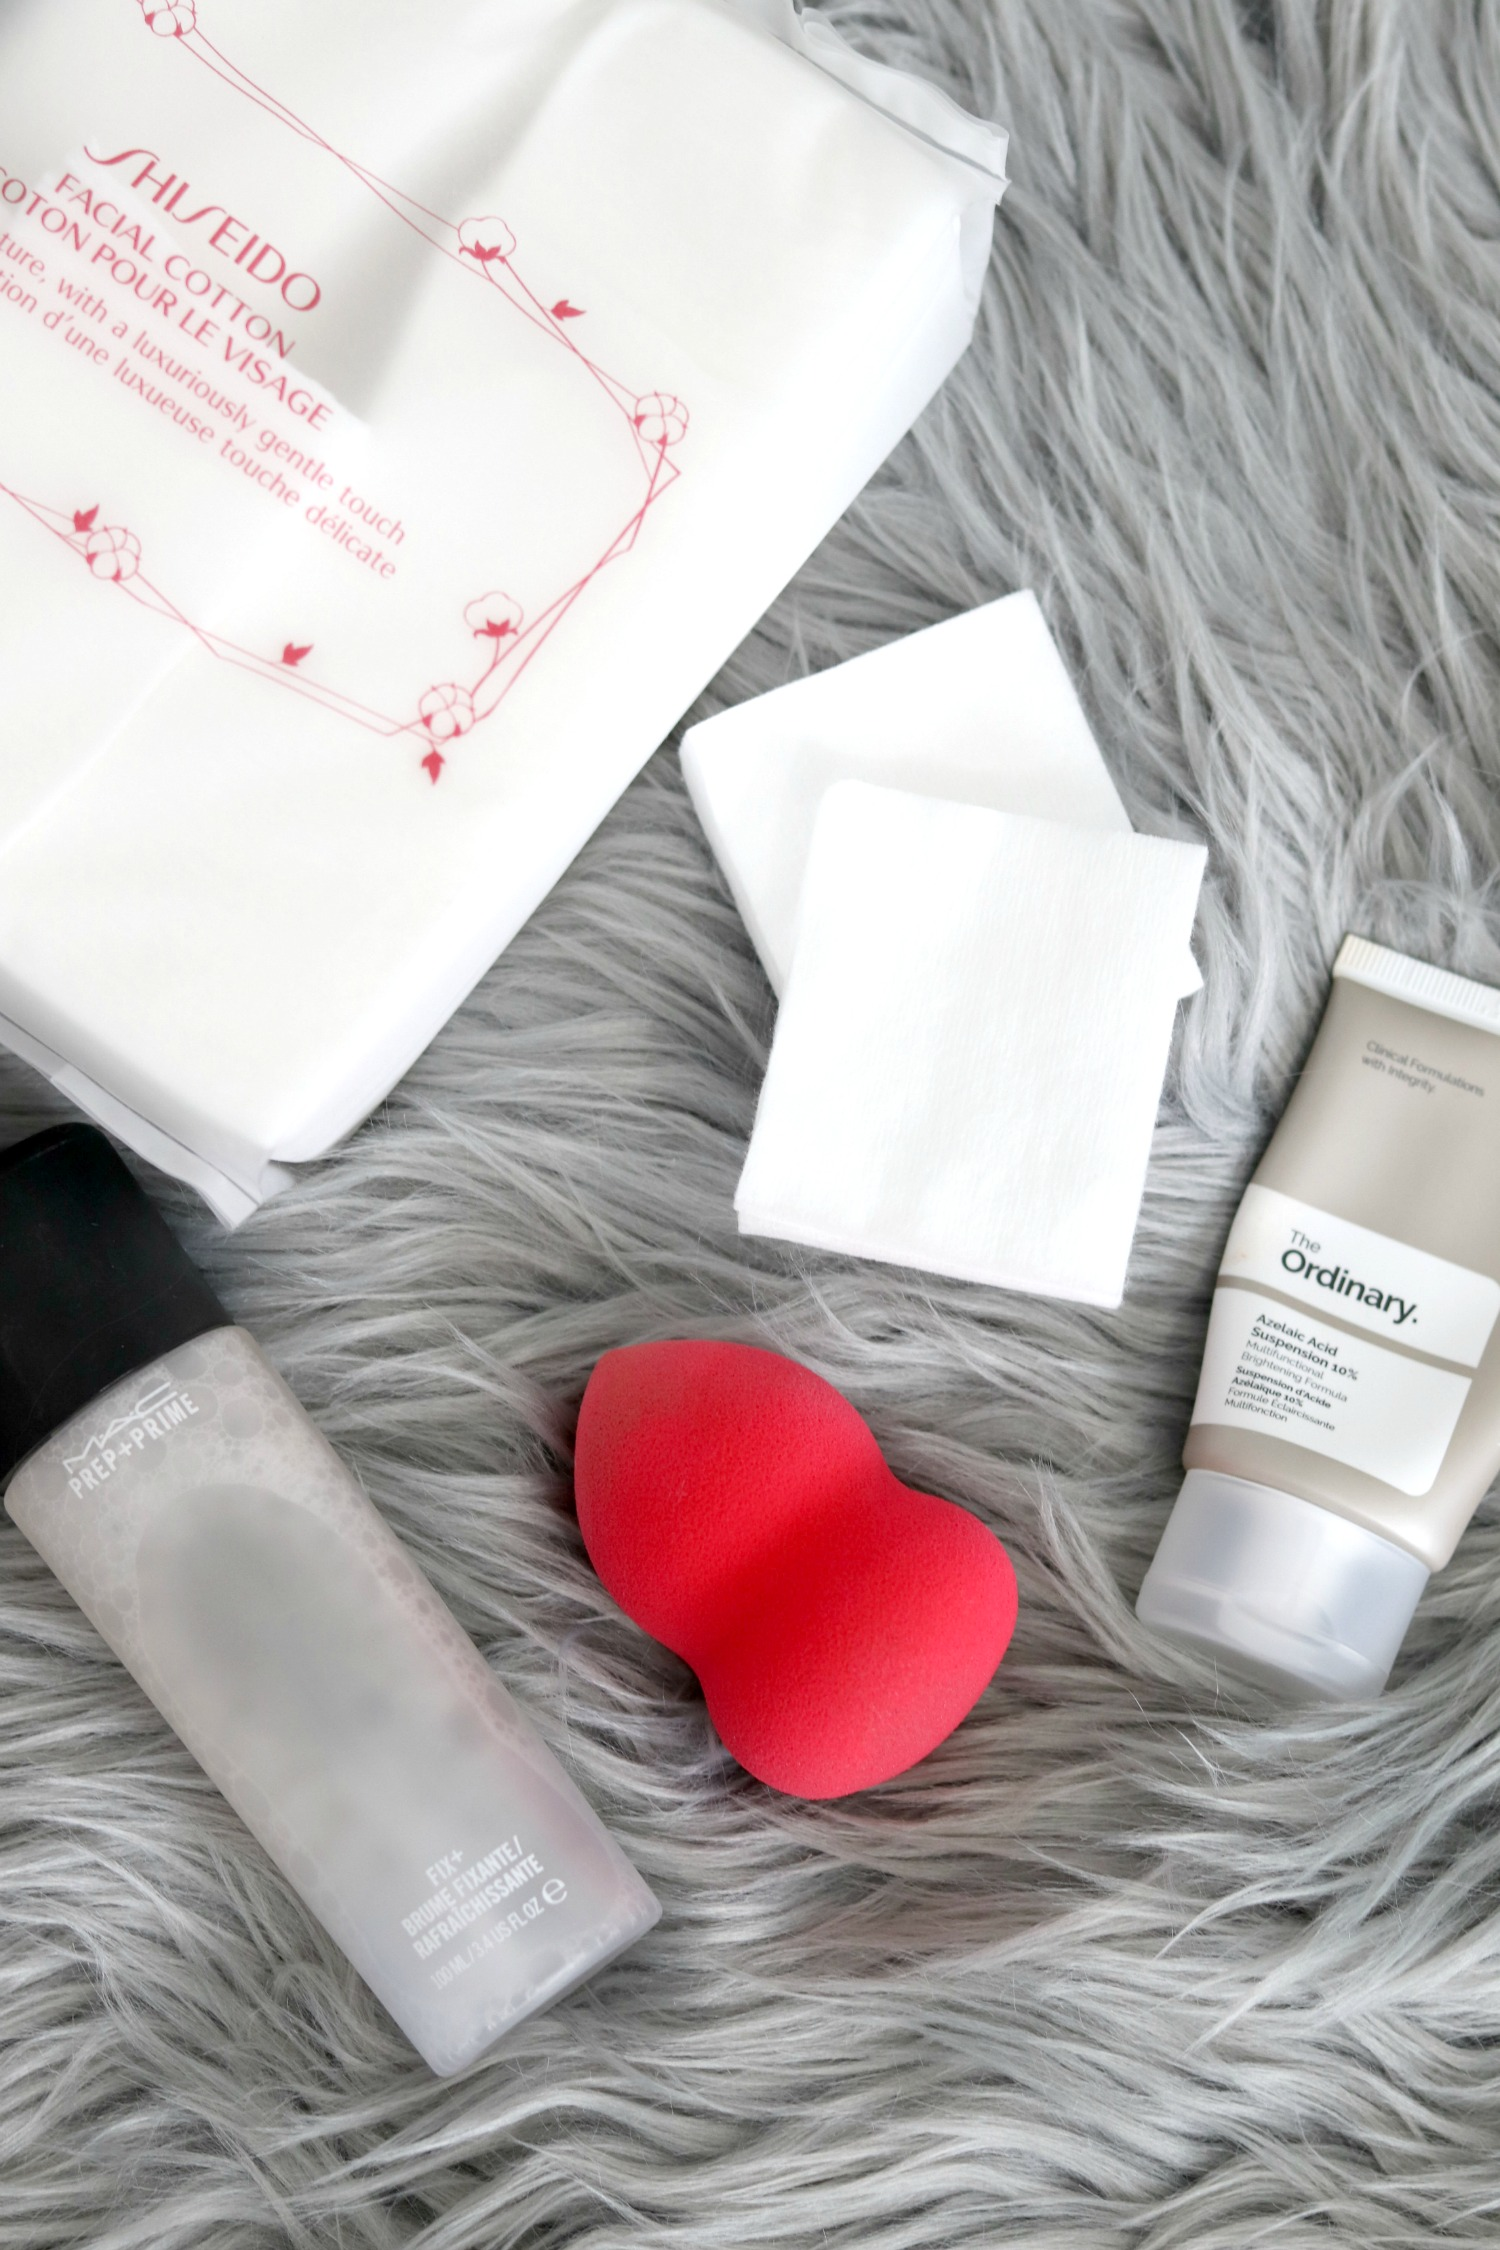 Spring Sephora and Ulta Haul 2018 Shiseido Facial Cotton, MAC Prep and Prime Fix+, Morphe Blending Sponge Ulta, The Ordinary Azelaic Acid